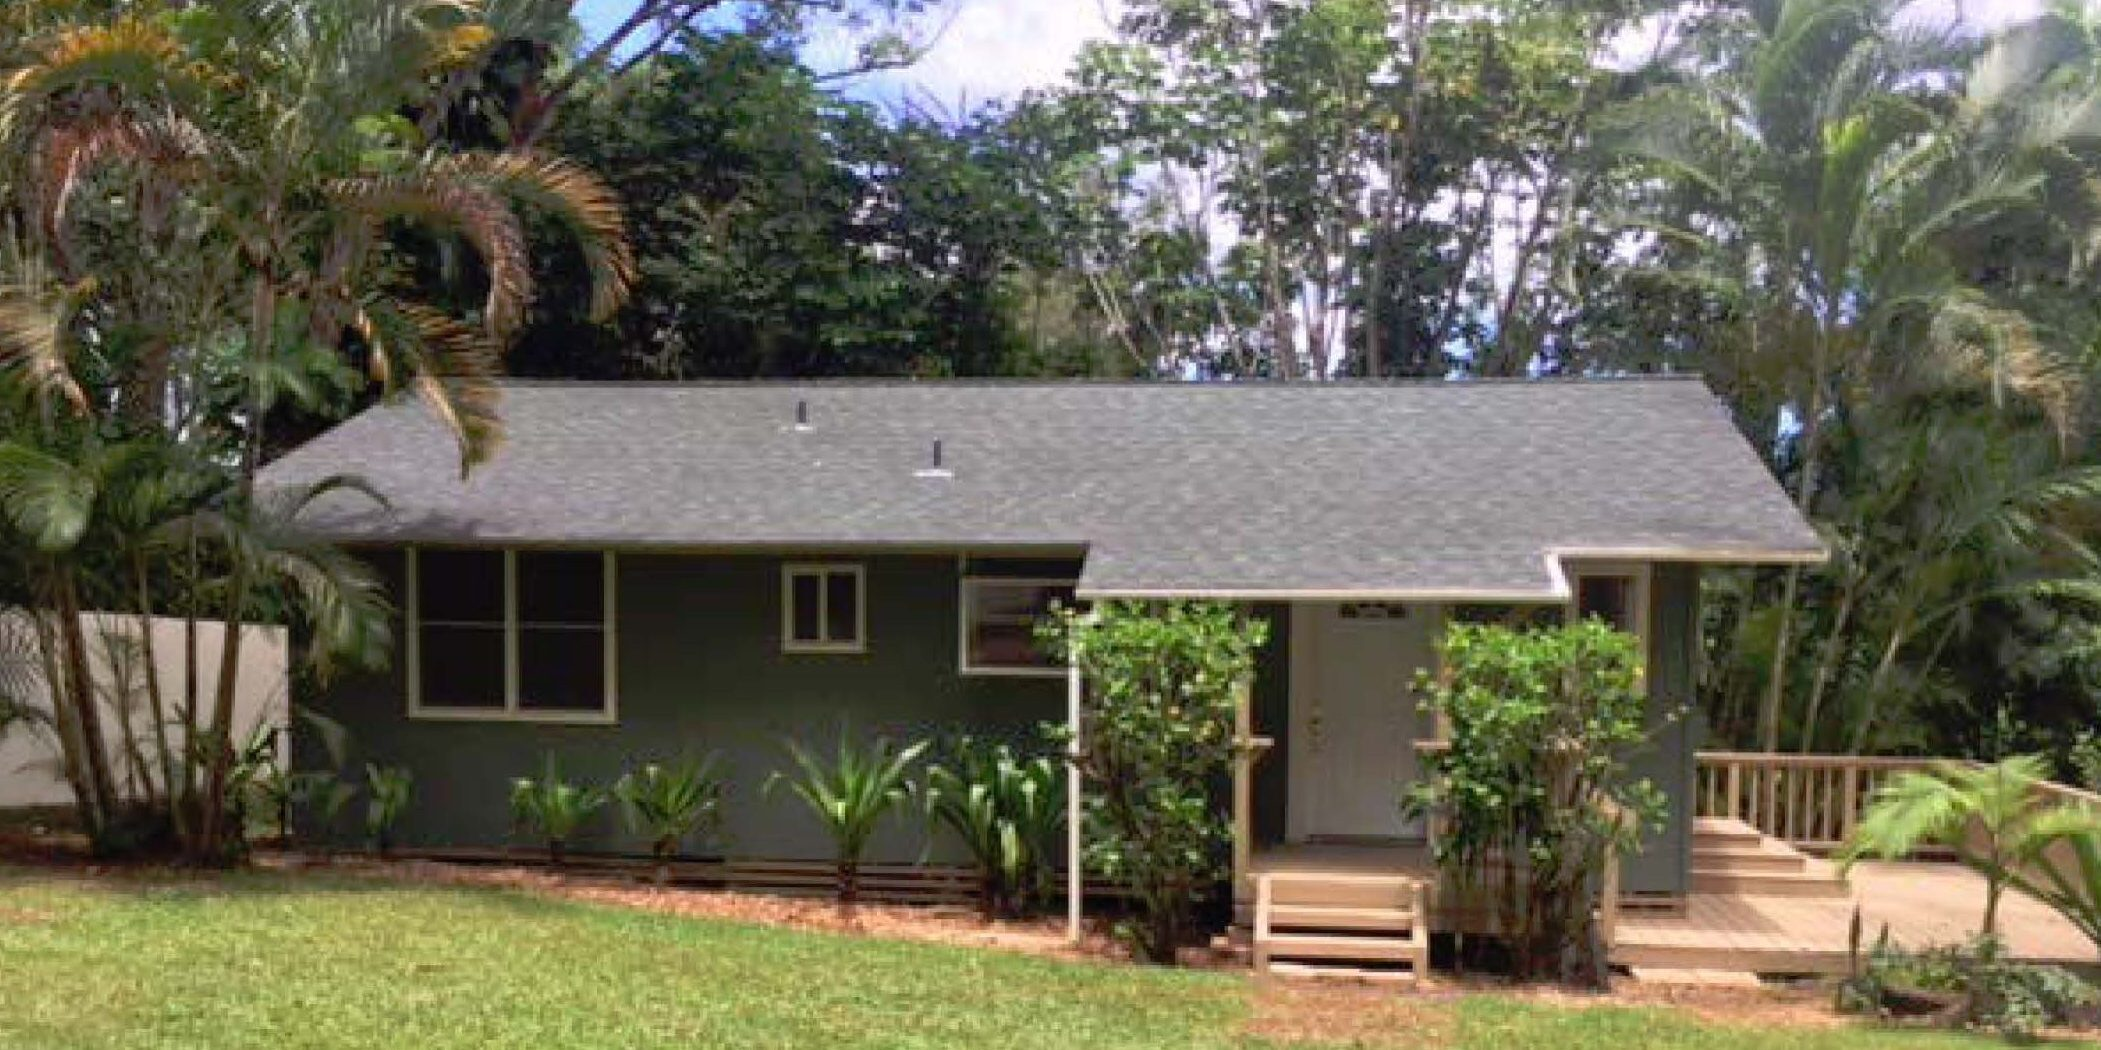 all haleiwa home rental listings u2013 haleiwa home rentals